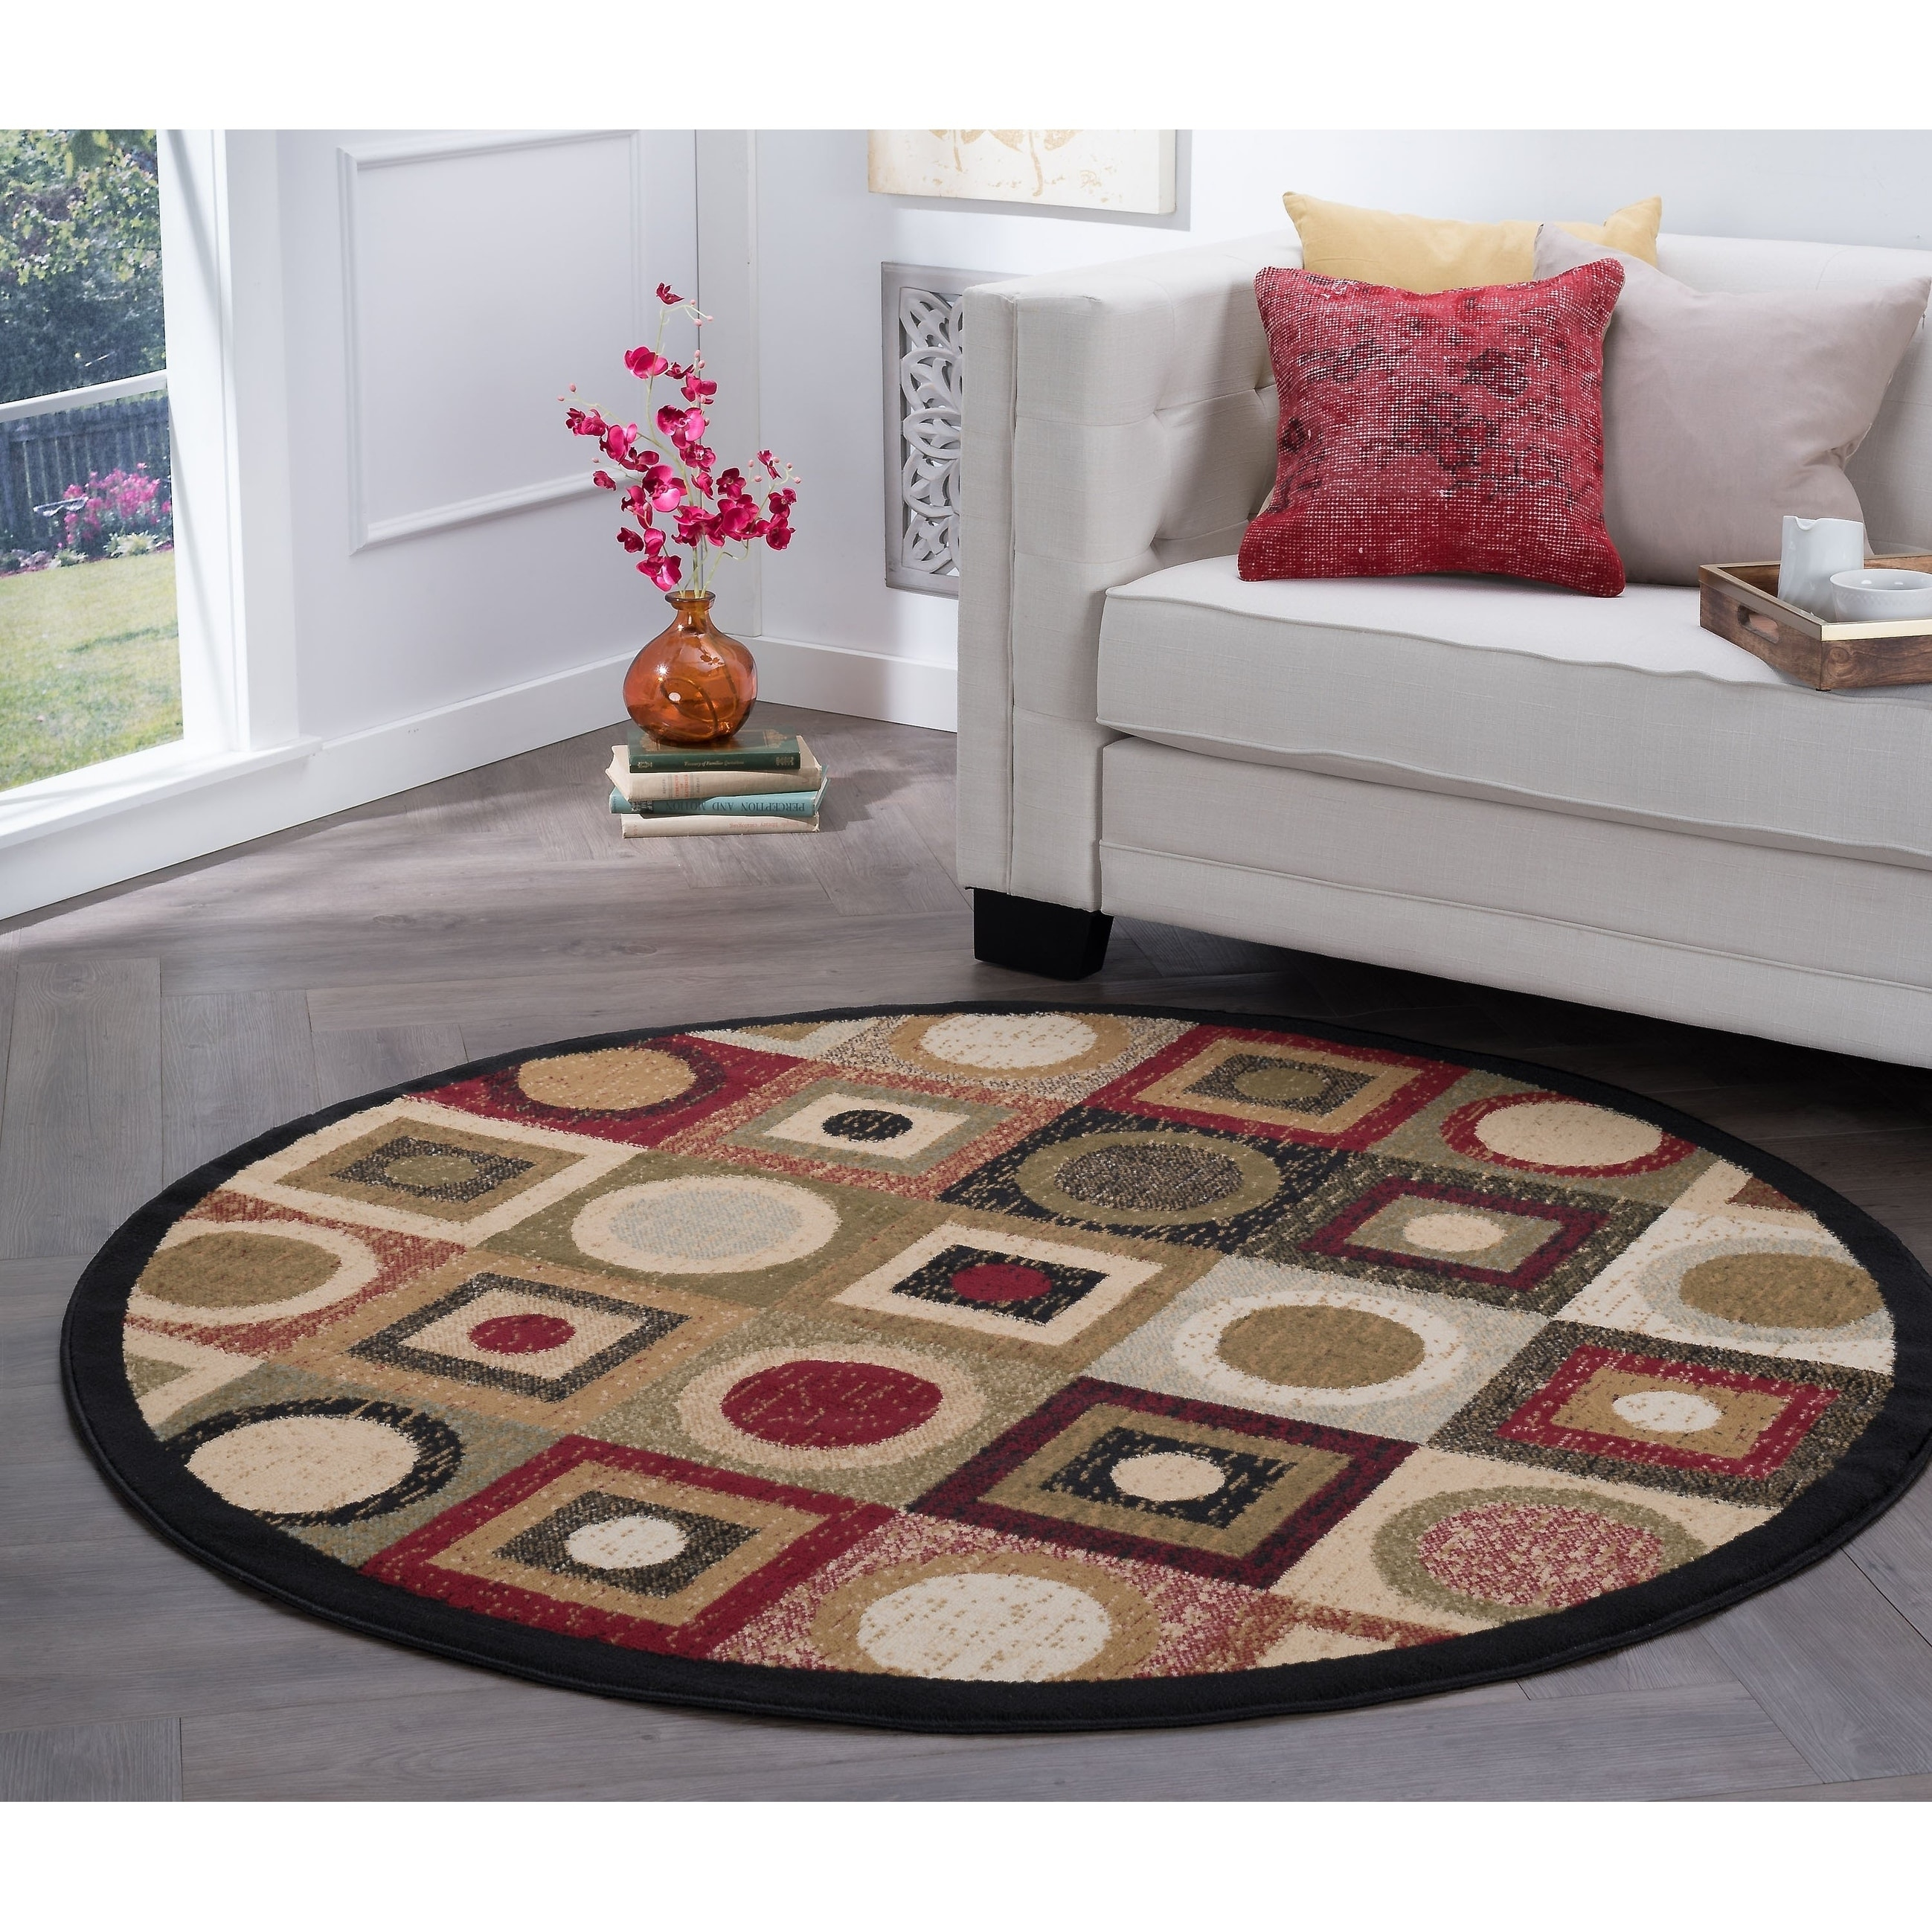 Shop Black Friday Deals On Alise Rugs Hamilton Contemporary Geometric Round Area Rug 7 10 X 7 10 Overstock 20246526